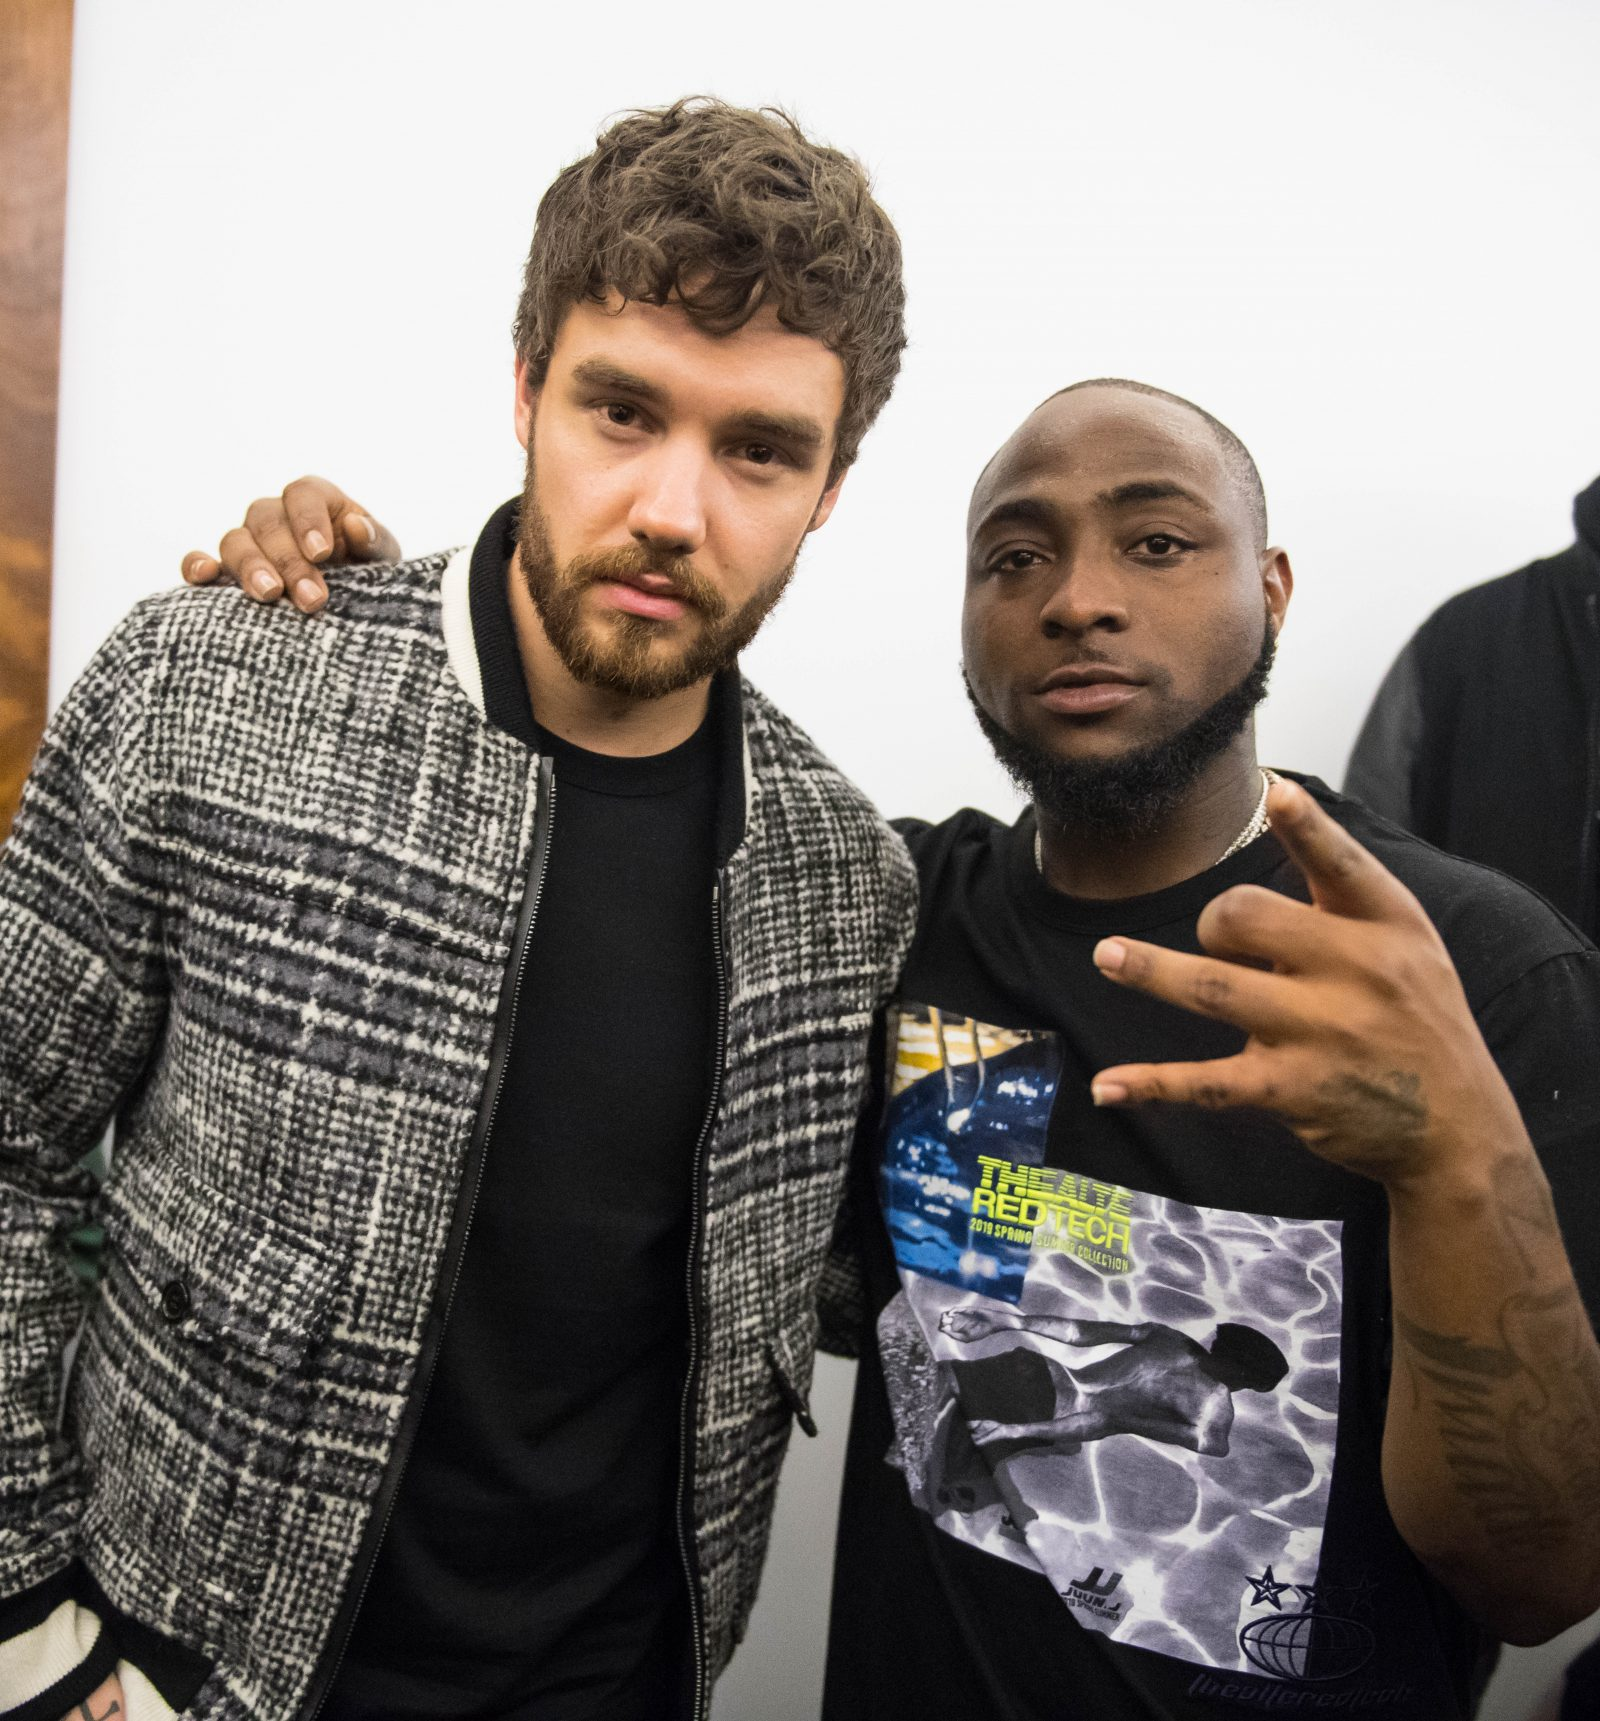 London, United Kingdom.  January 27, 2019. Singer Liam Payne attends Davido's concert. Davido performs live on stage at  The O2 Arena. Michael Tubi / Alamy Live News